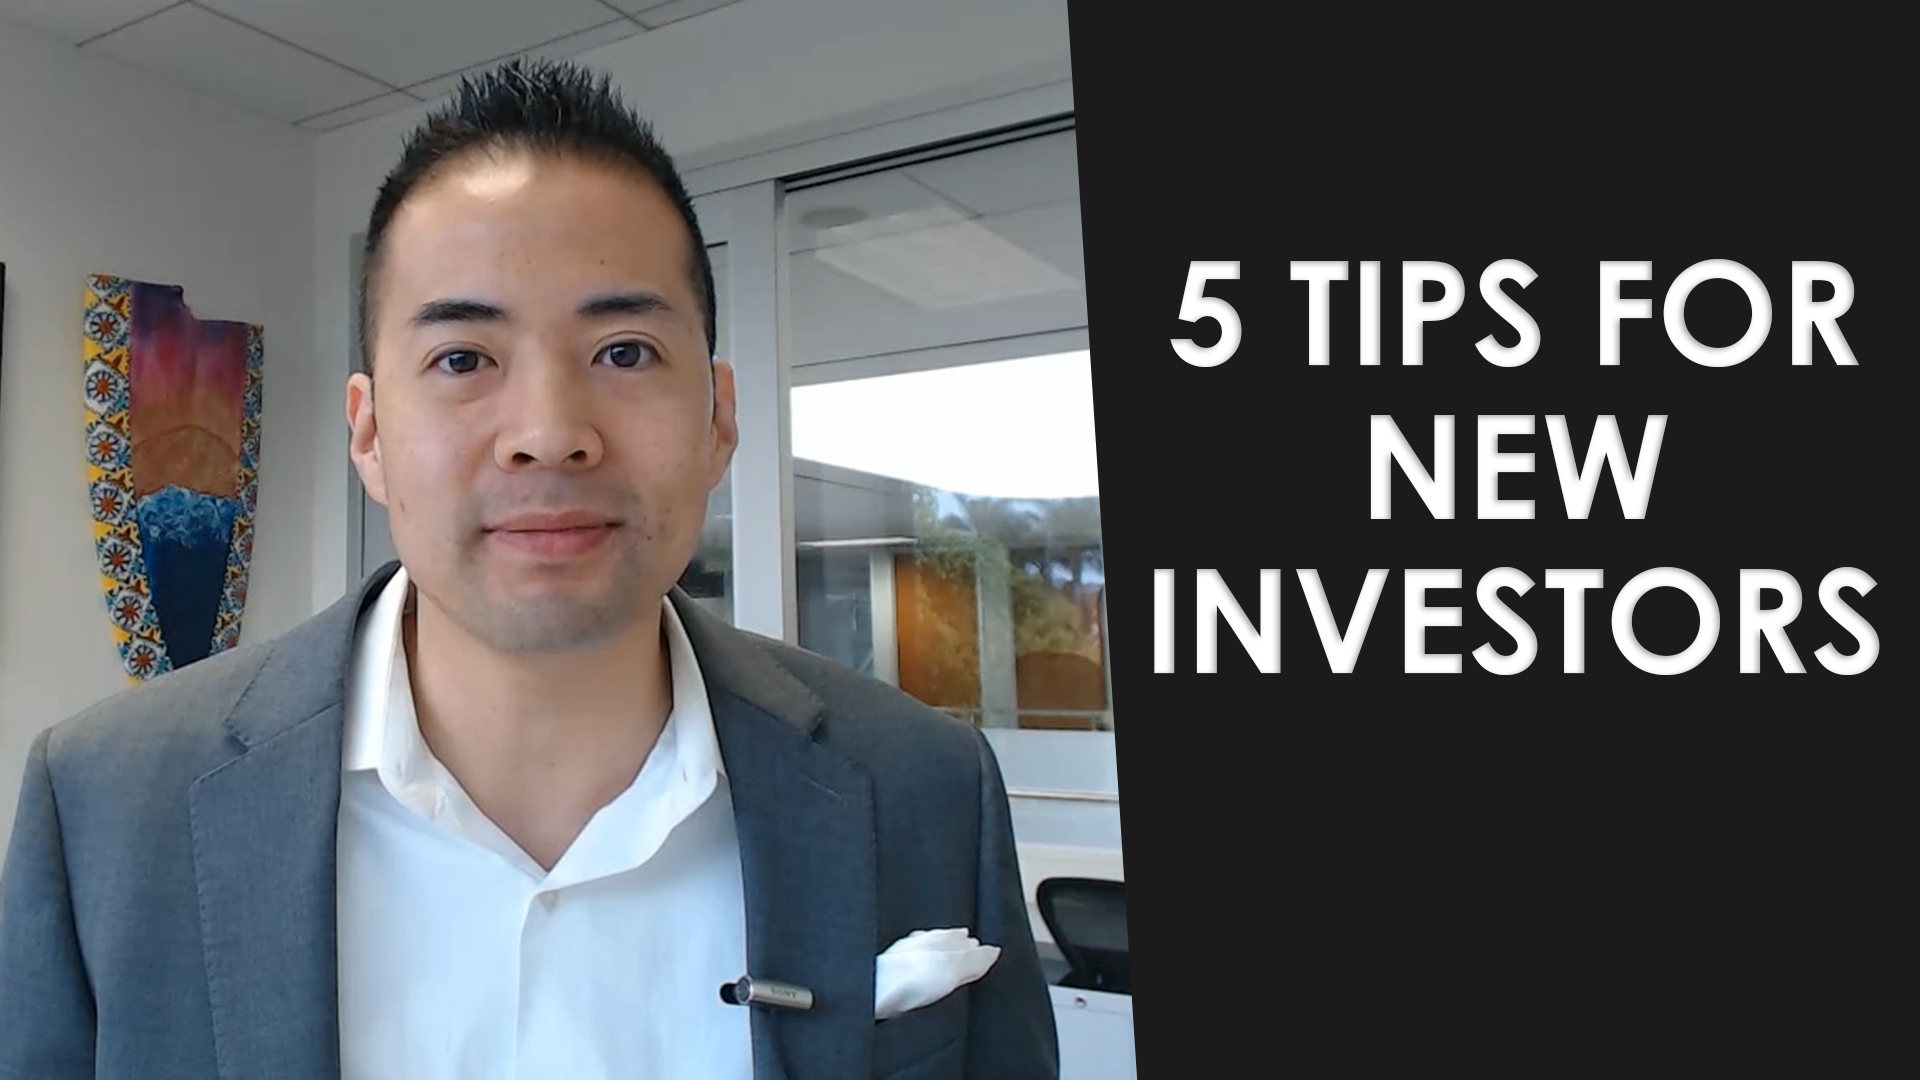 Start Your Real Estate Investment Career Off Right With These 5 Tips